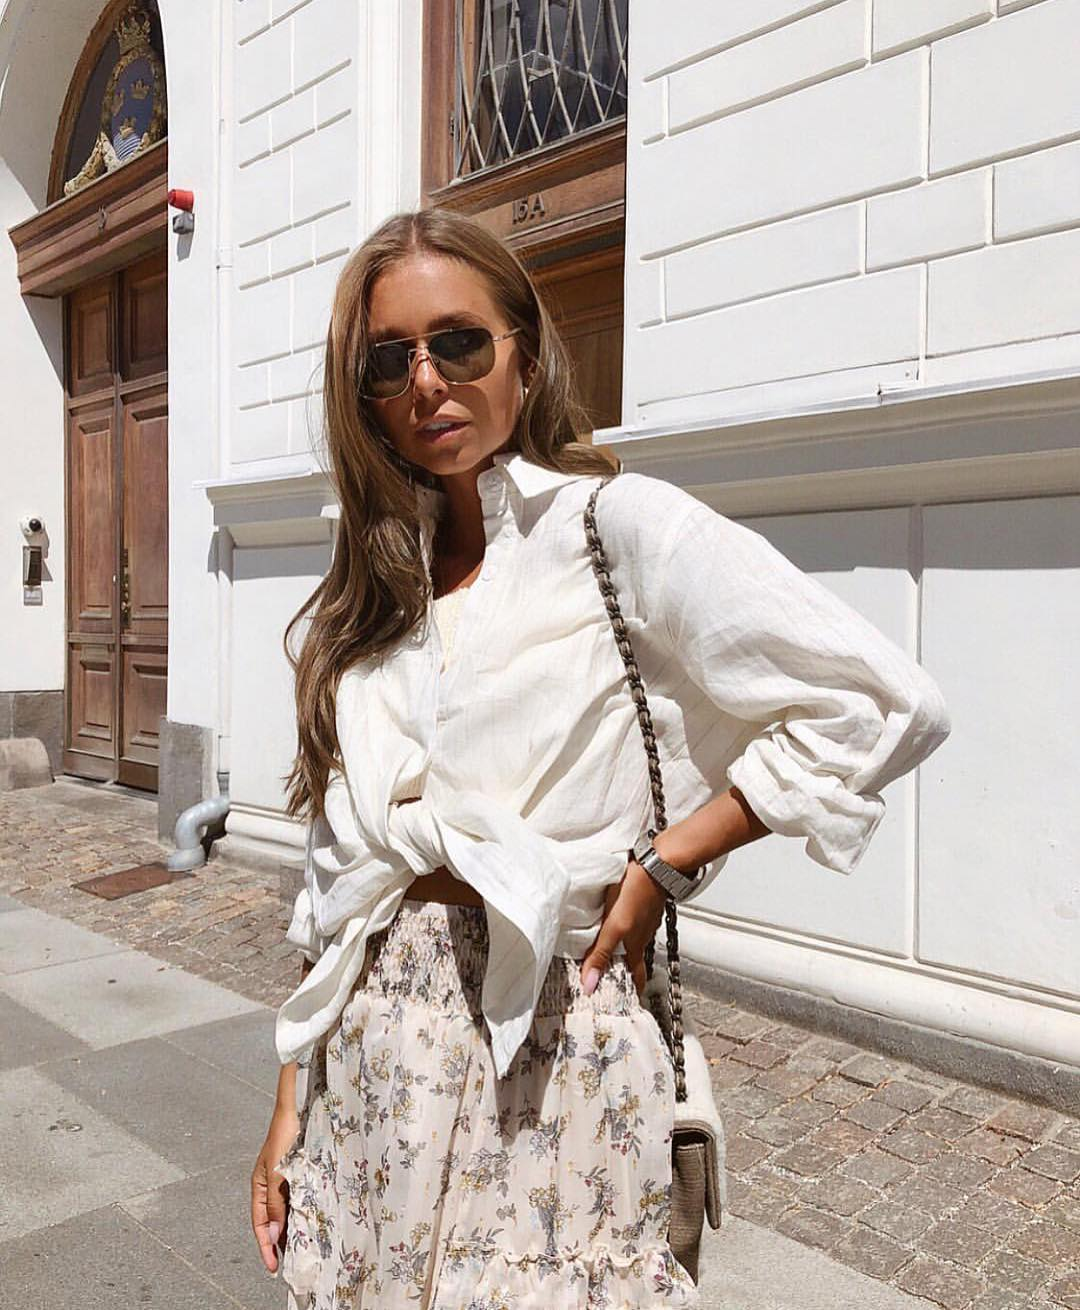 White Linen Front Tied Shirt And High Rise Floral Skirt For Summer 2020